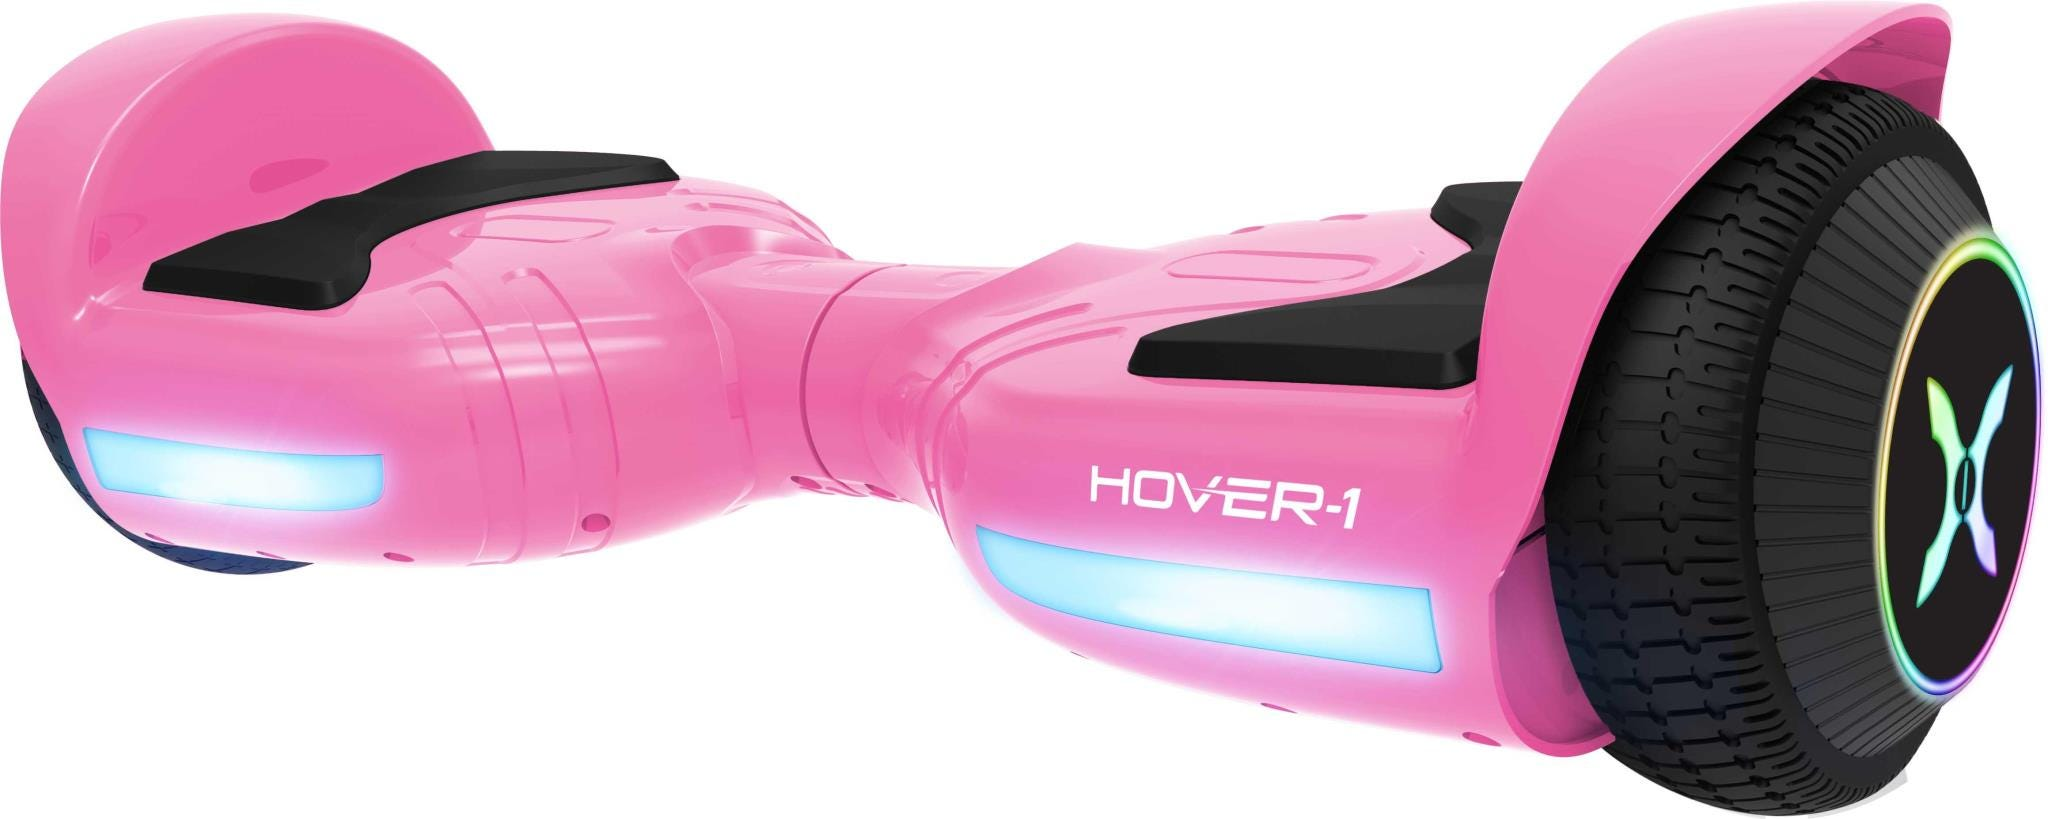 Hover-1 Rival Hoverboard - Pink